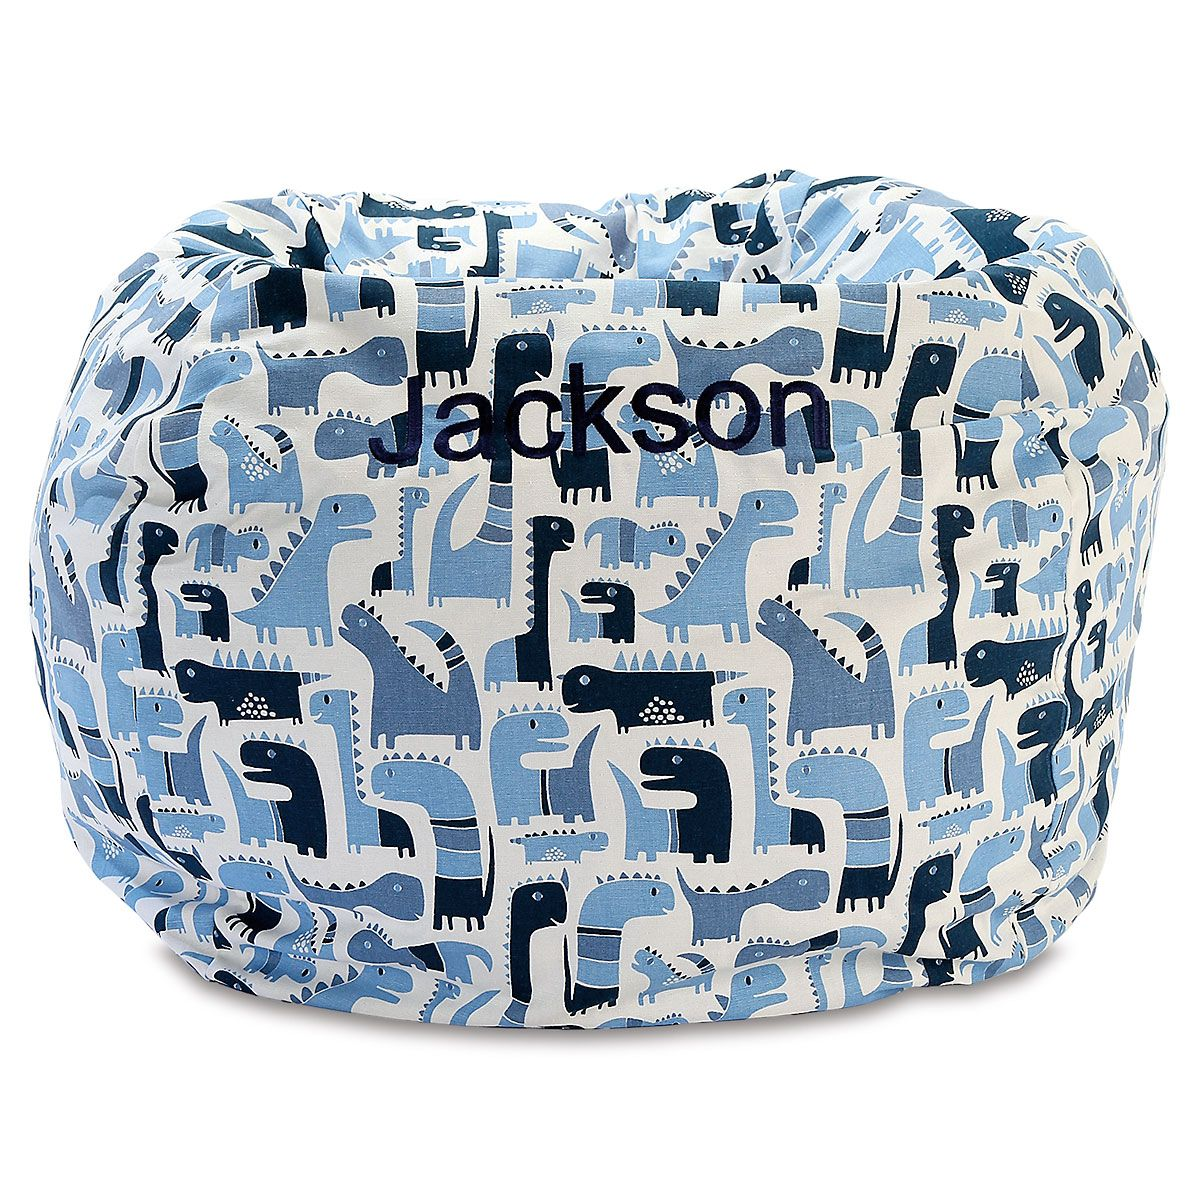 Personalized Giant Life Bean Bag Chair Lillian Vernon